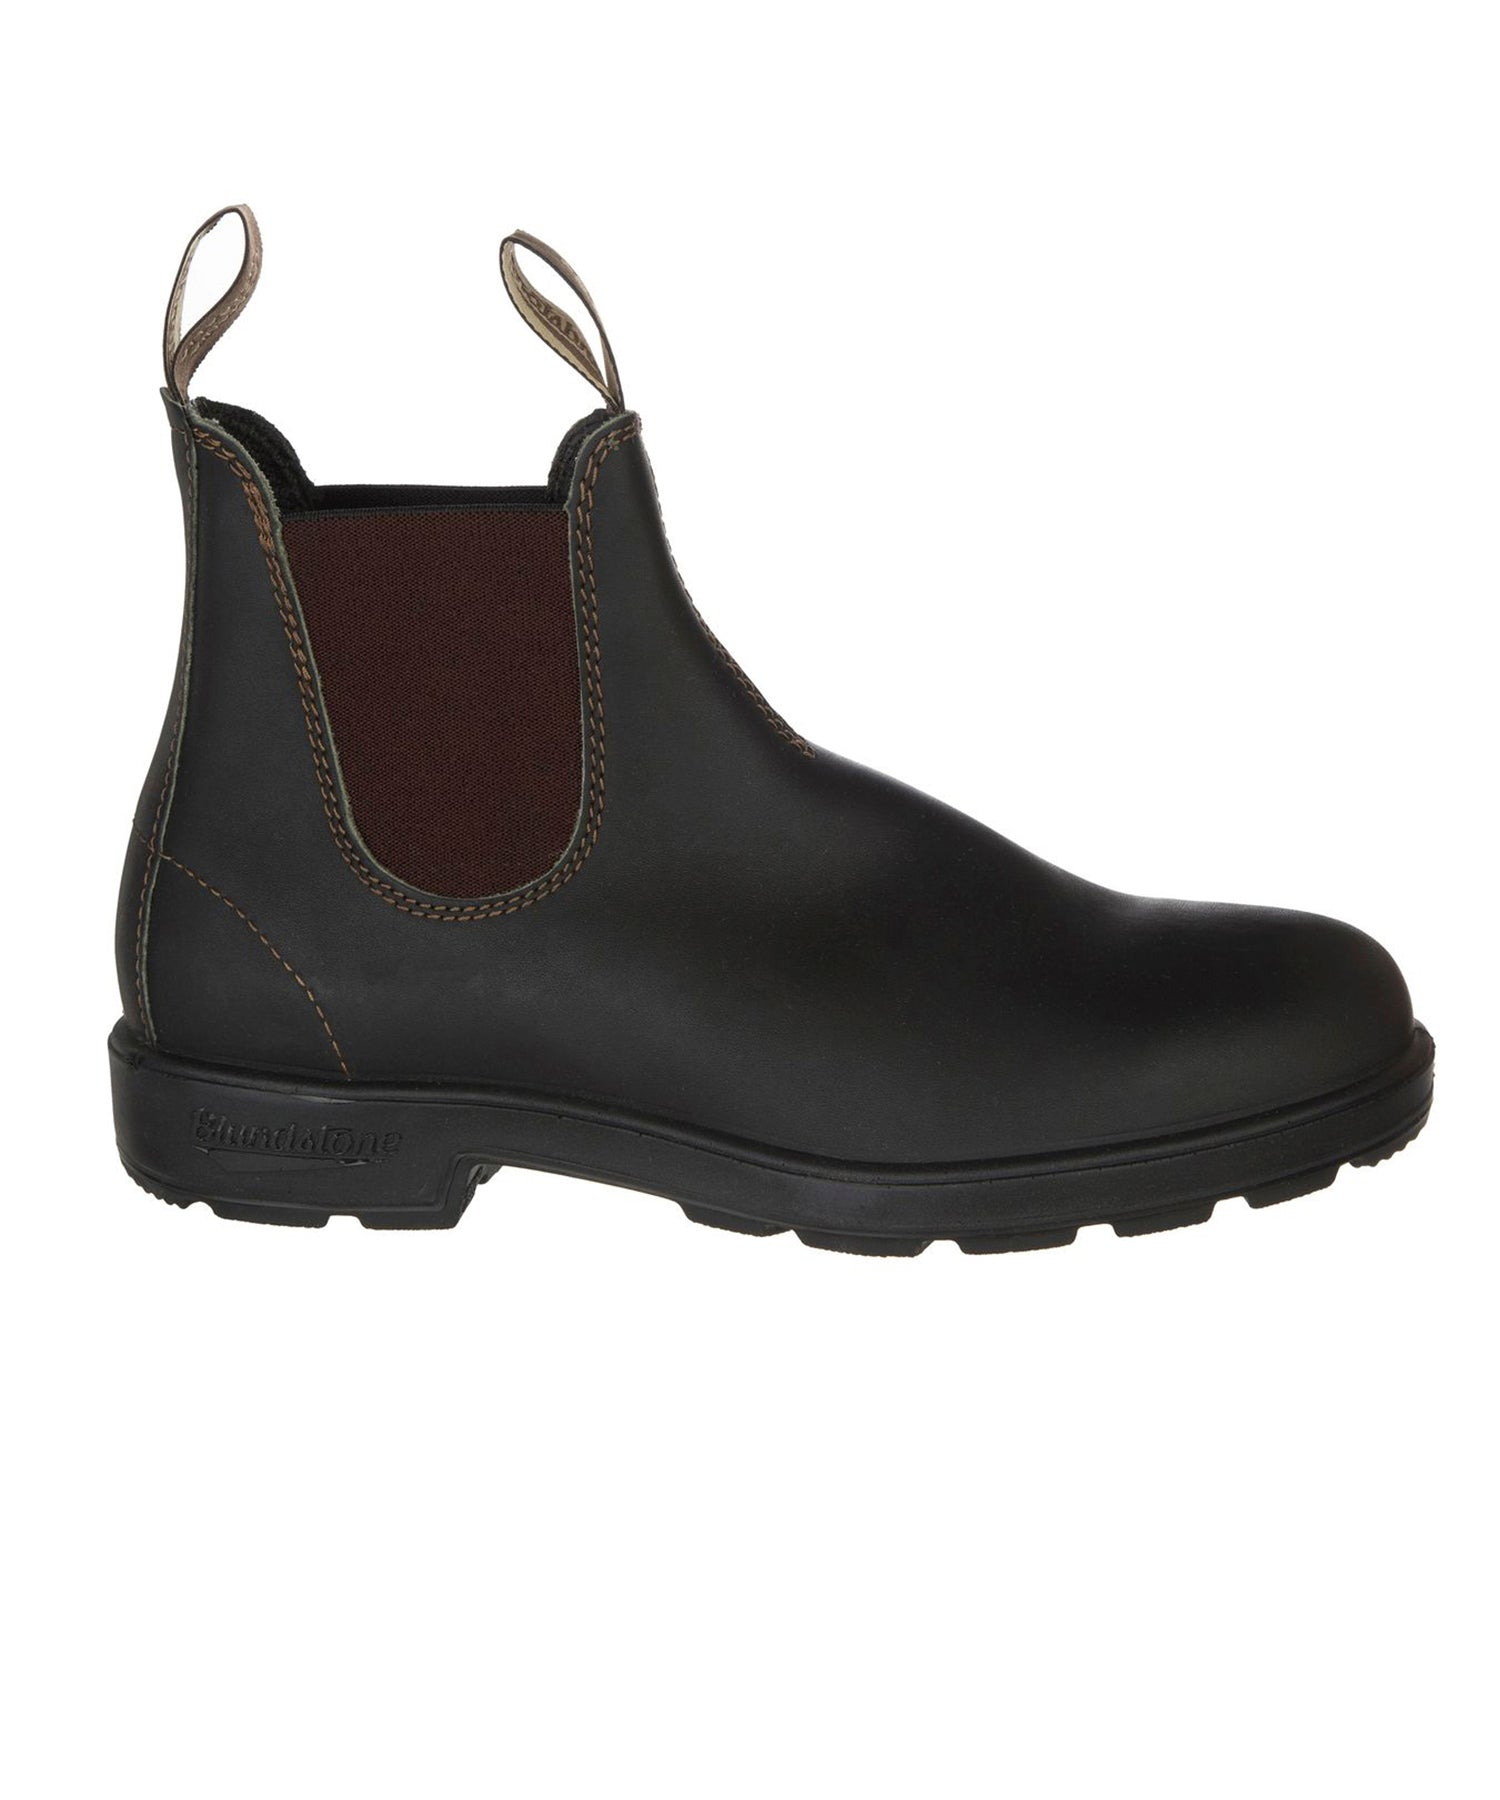 Blundstone Original 500 Series Stout Brown Premium